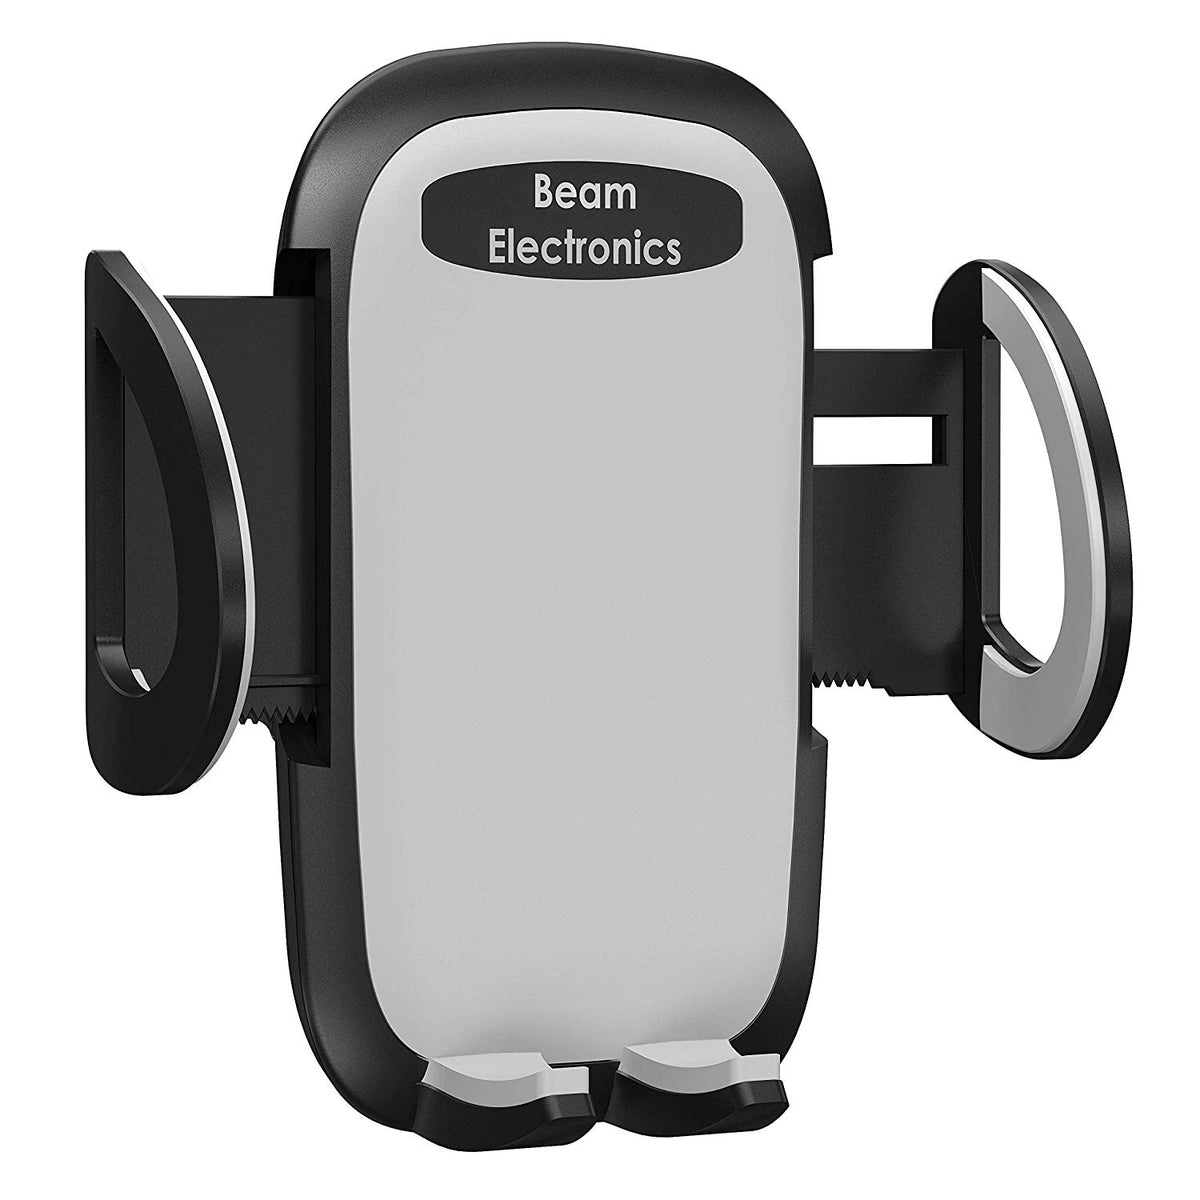 Arkon Camera Hot Shoe Magnetic Phone Mount for iPhone X 8 7 6S Plus 8 7 6S Galaxy Note 8 5 Retail Black